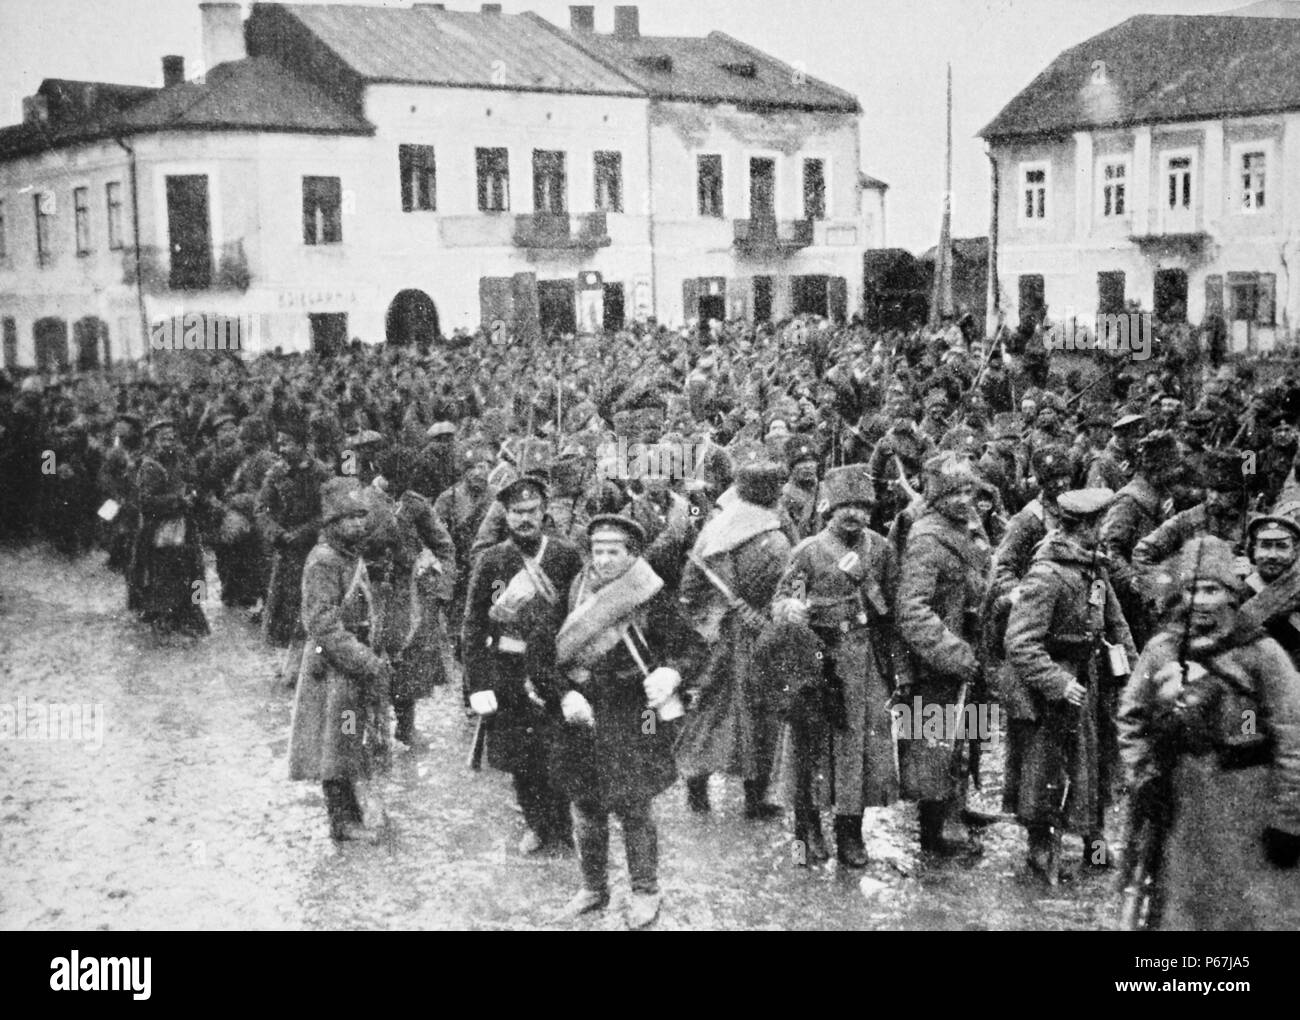 Russian troops in Warsaw during world war one 1915 - Stock Image